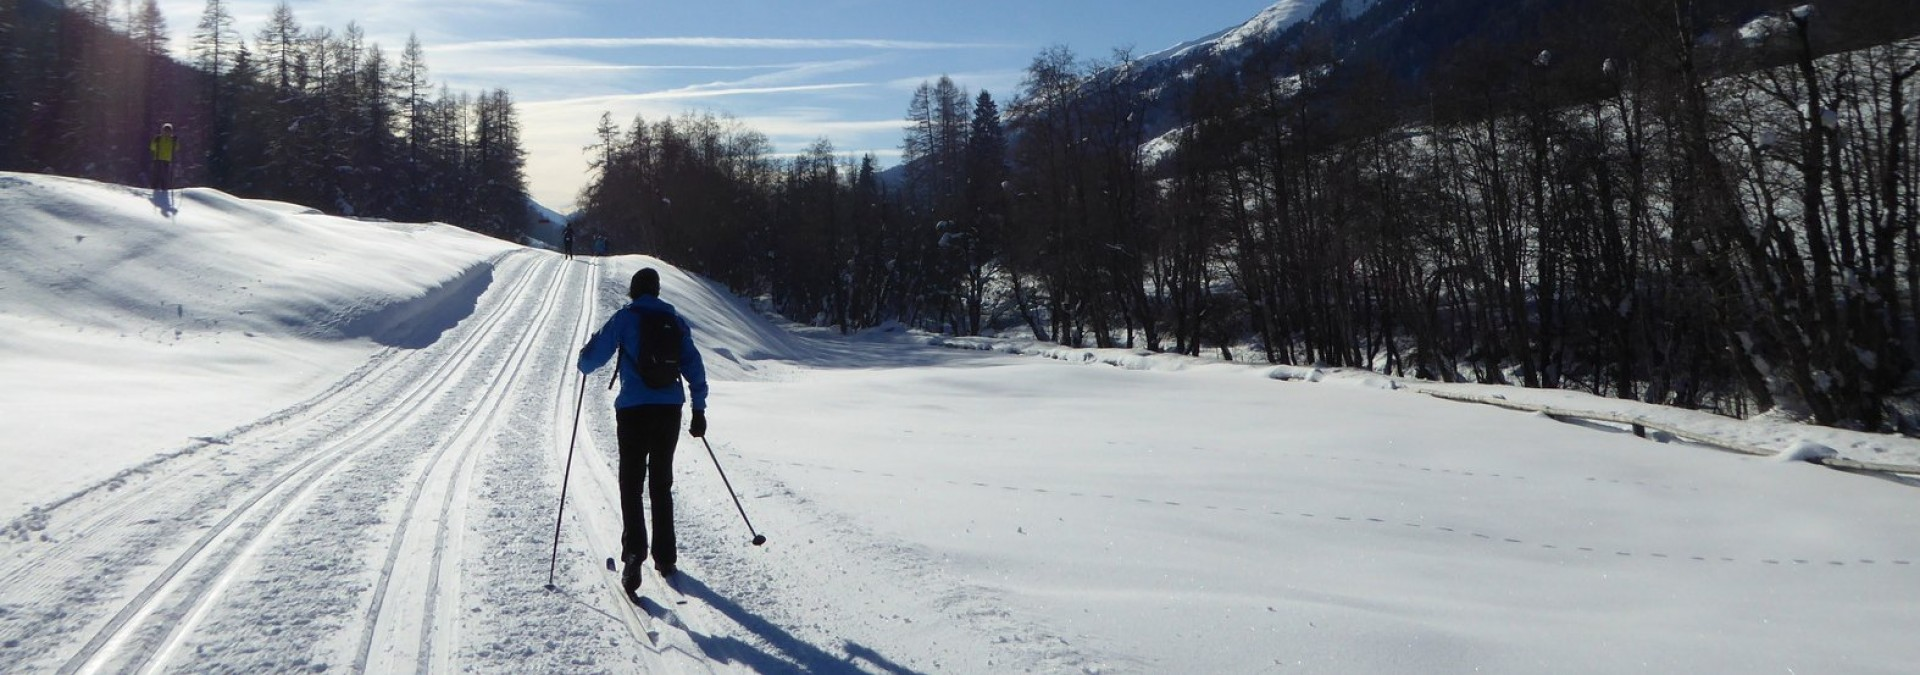 Swiss Alps Cross Country Skiing, Obergoms Valley